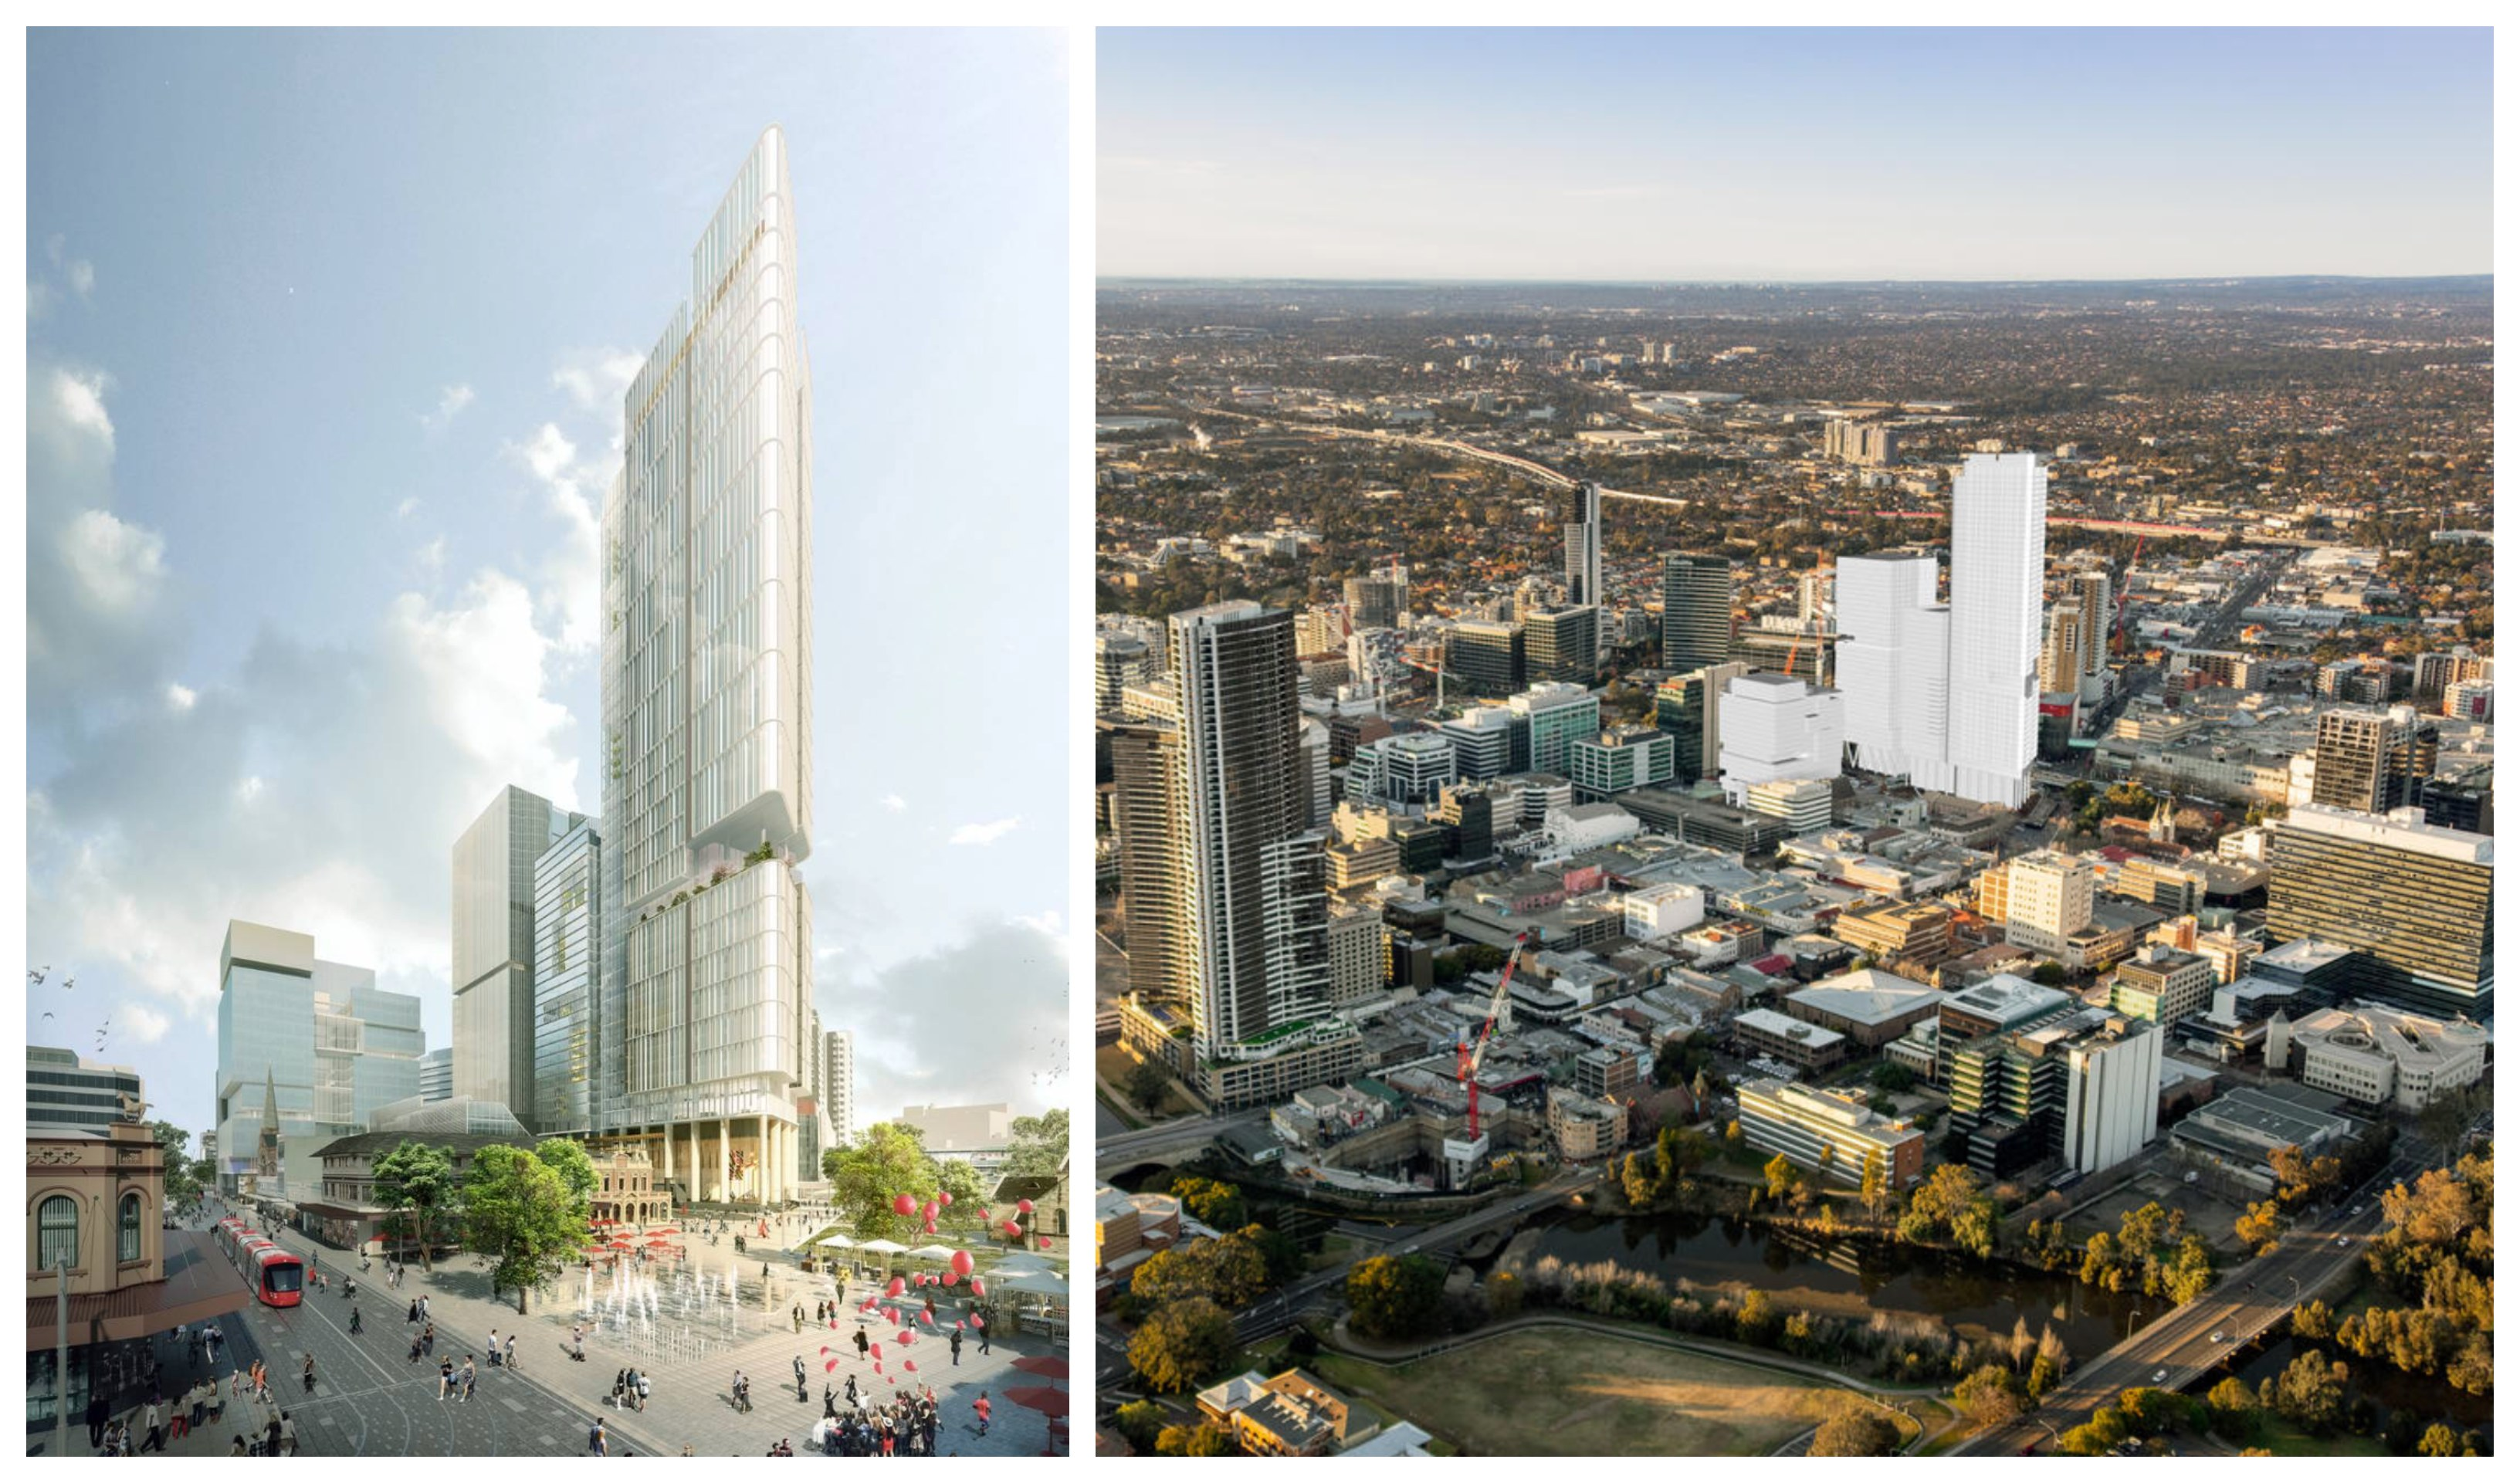 Architectural firm Johnson Pilton Walker (JPW) created the design of Towers 6 and 8 Parramatta Square, after winning a competitive design excellence process.